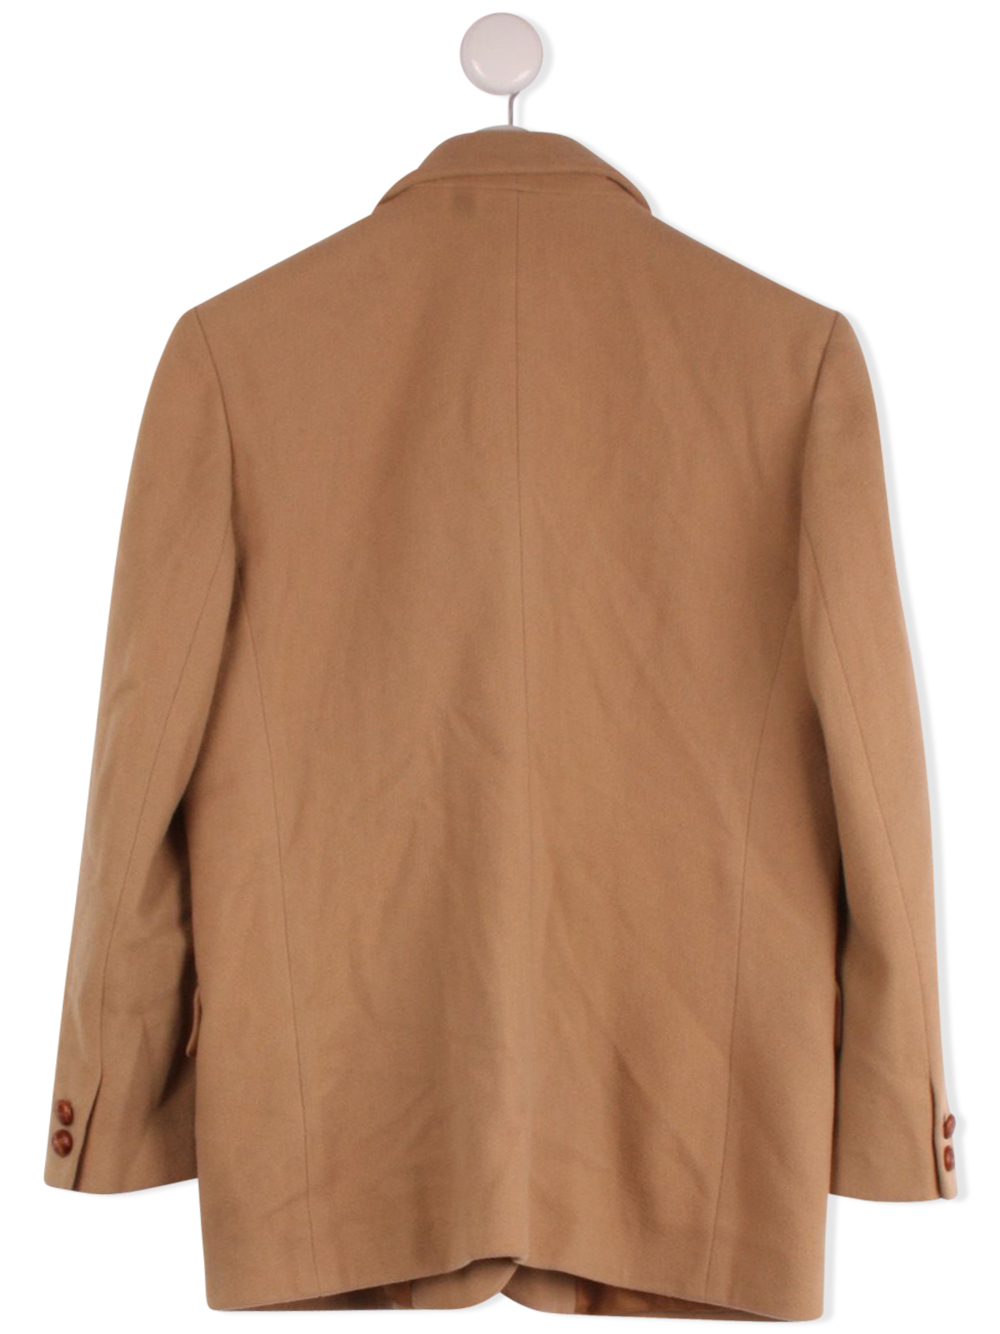 new style 1be40 21008 cashmere Giacca